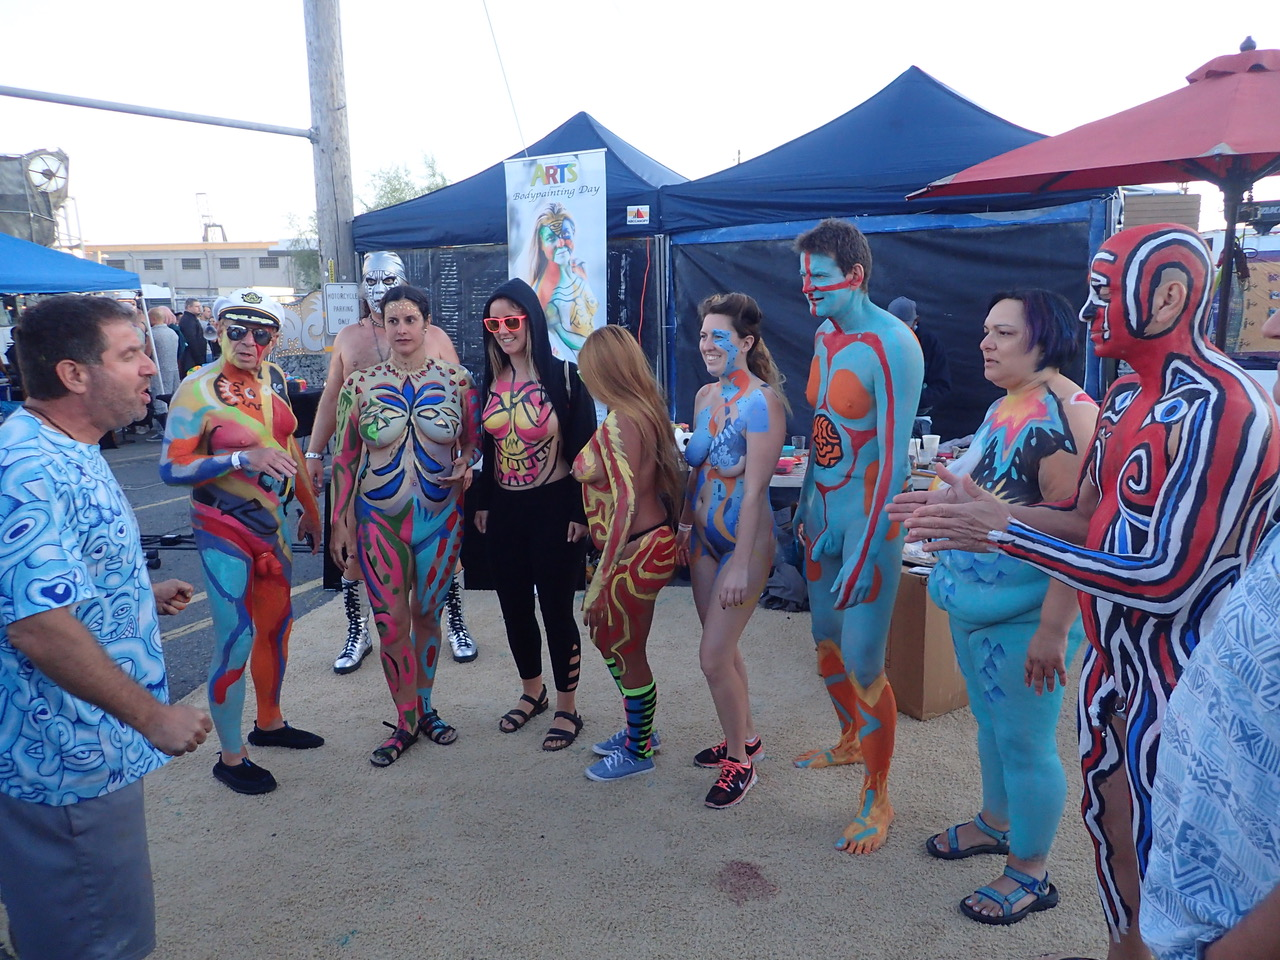 Bodypainting Day 2016: San Francisco & Brussels by Andy